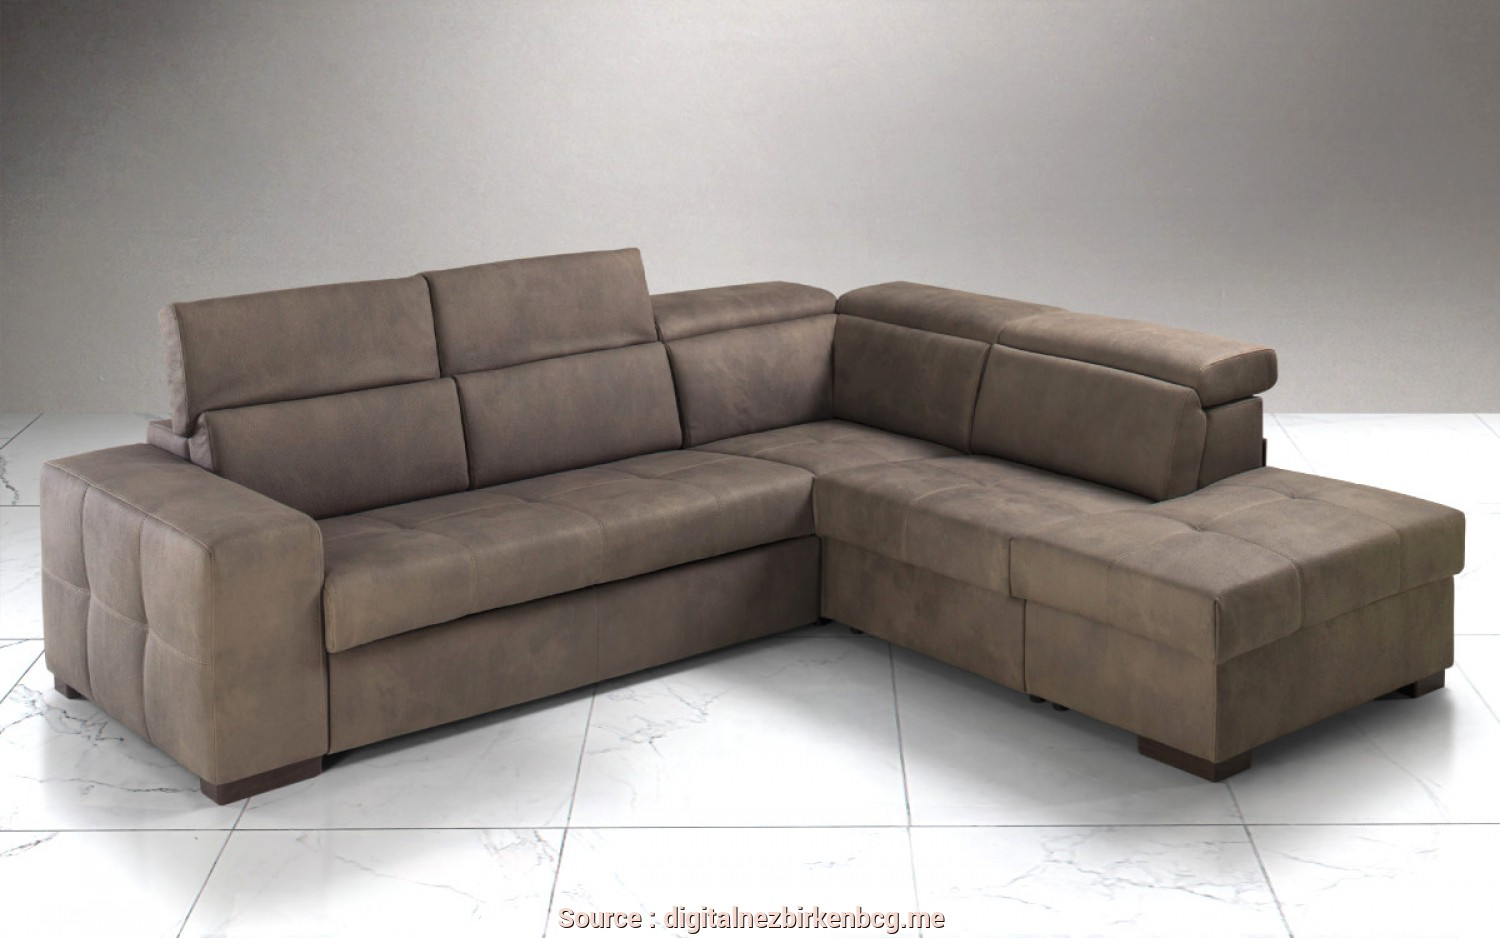 Mambo Big Sofa Incredibile 5 Mondo Convenienza Divani Letto Angolari